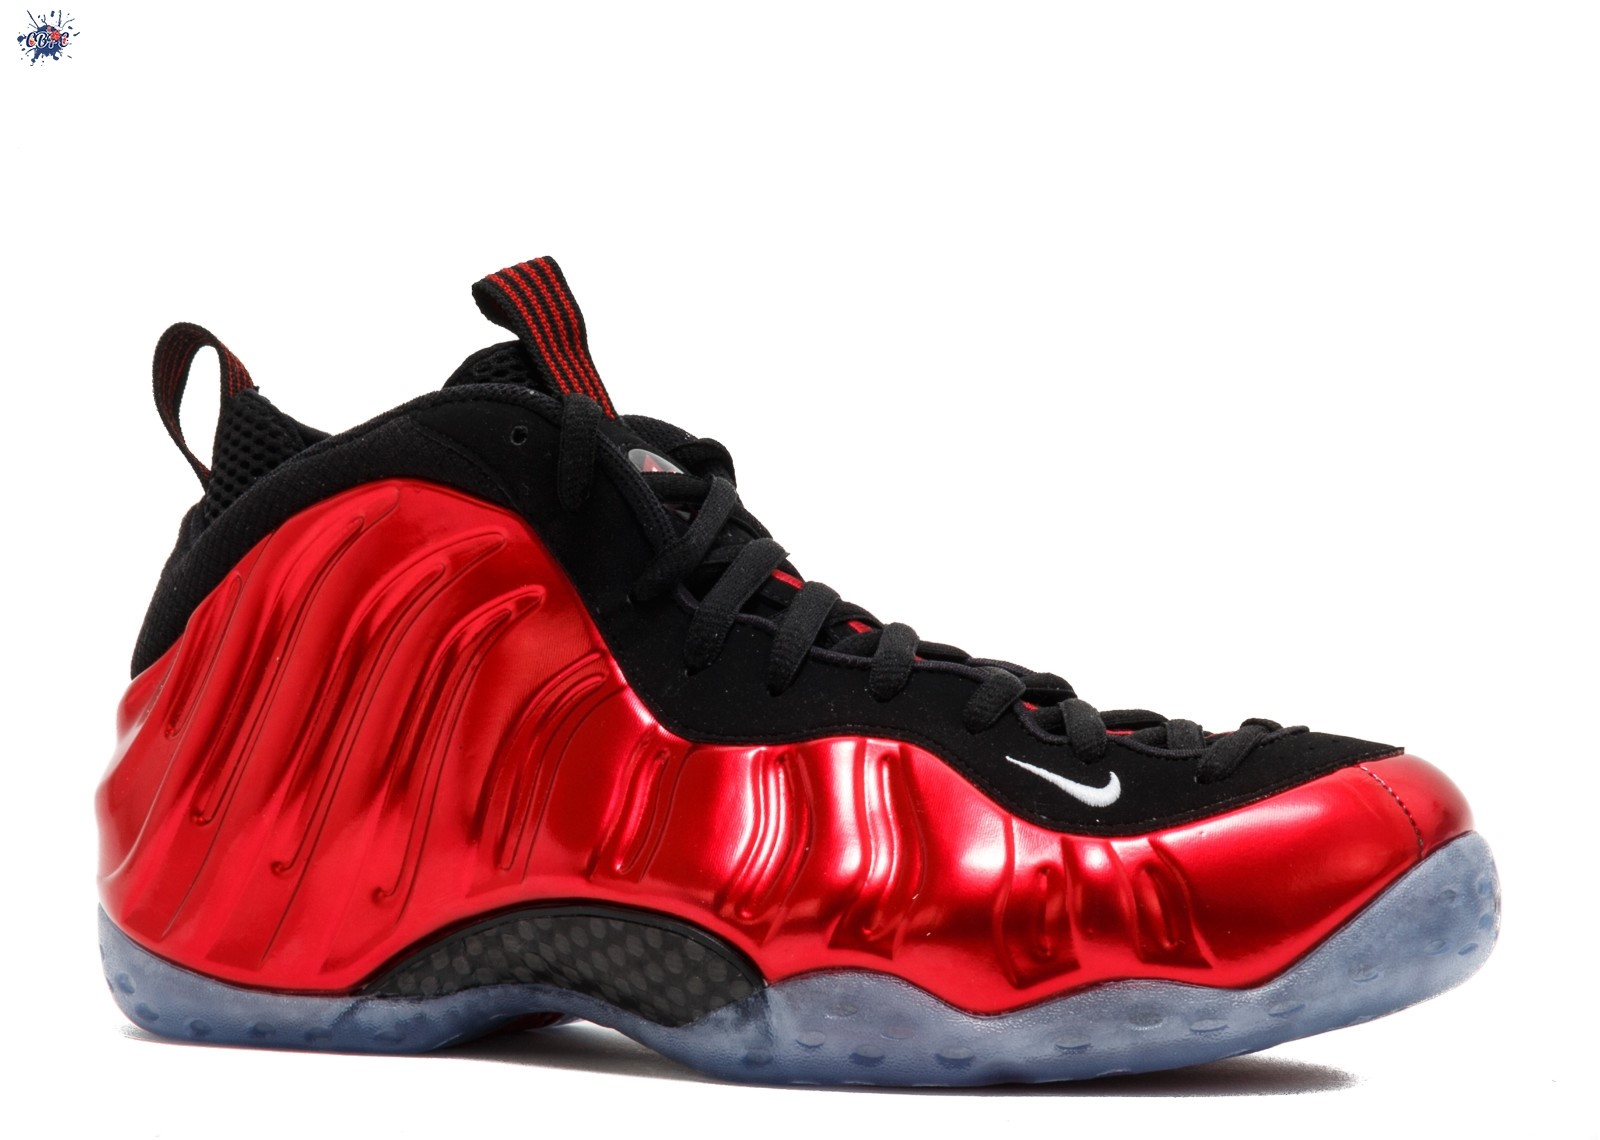 Meilleures Nike Air Foamposite One